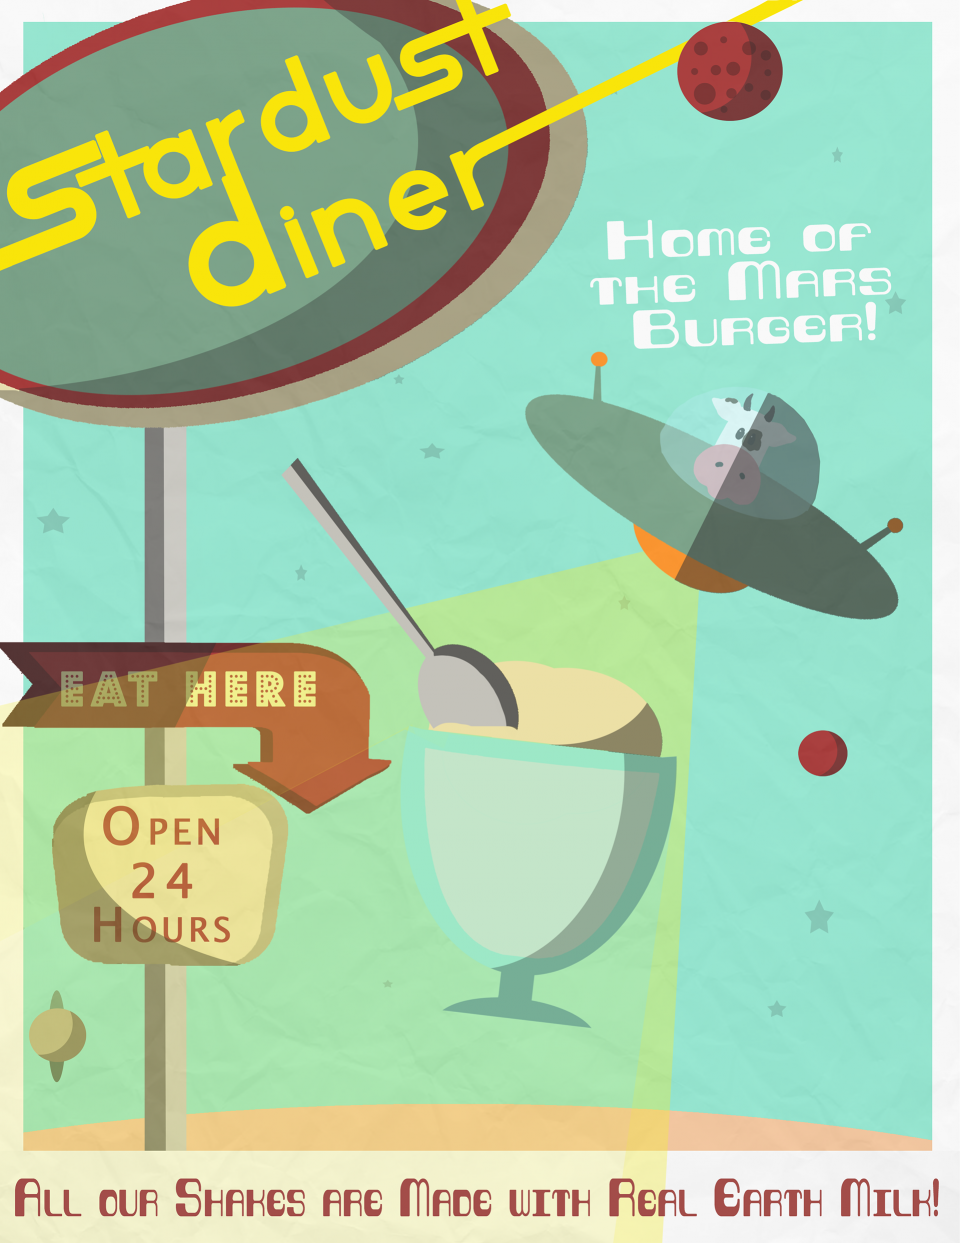 Stardust Diner Retro Posters is a series by Valerie Krepel '19.